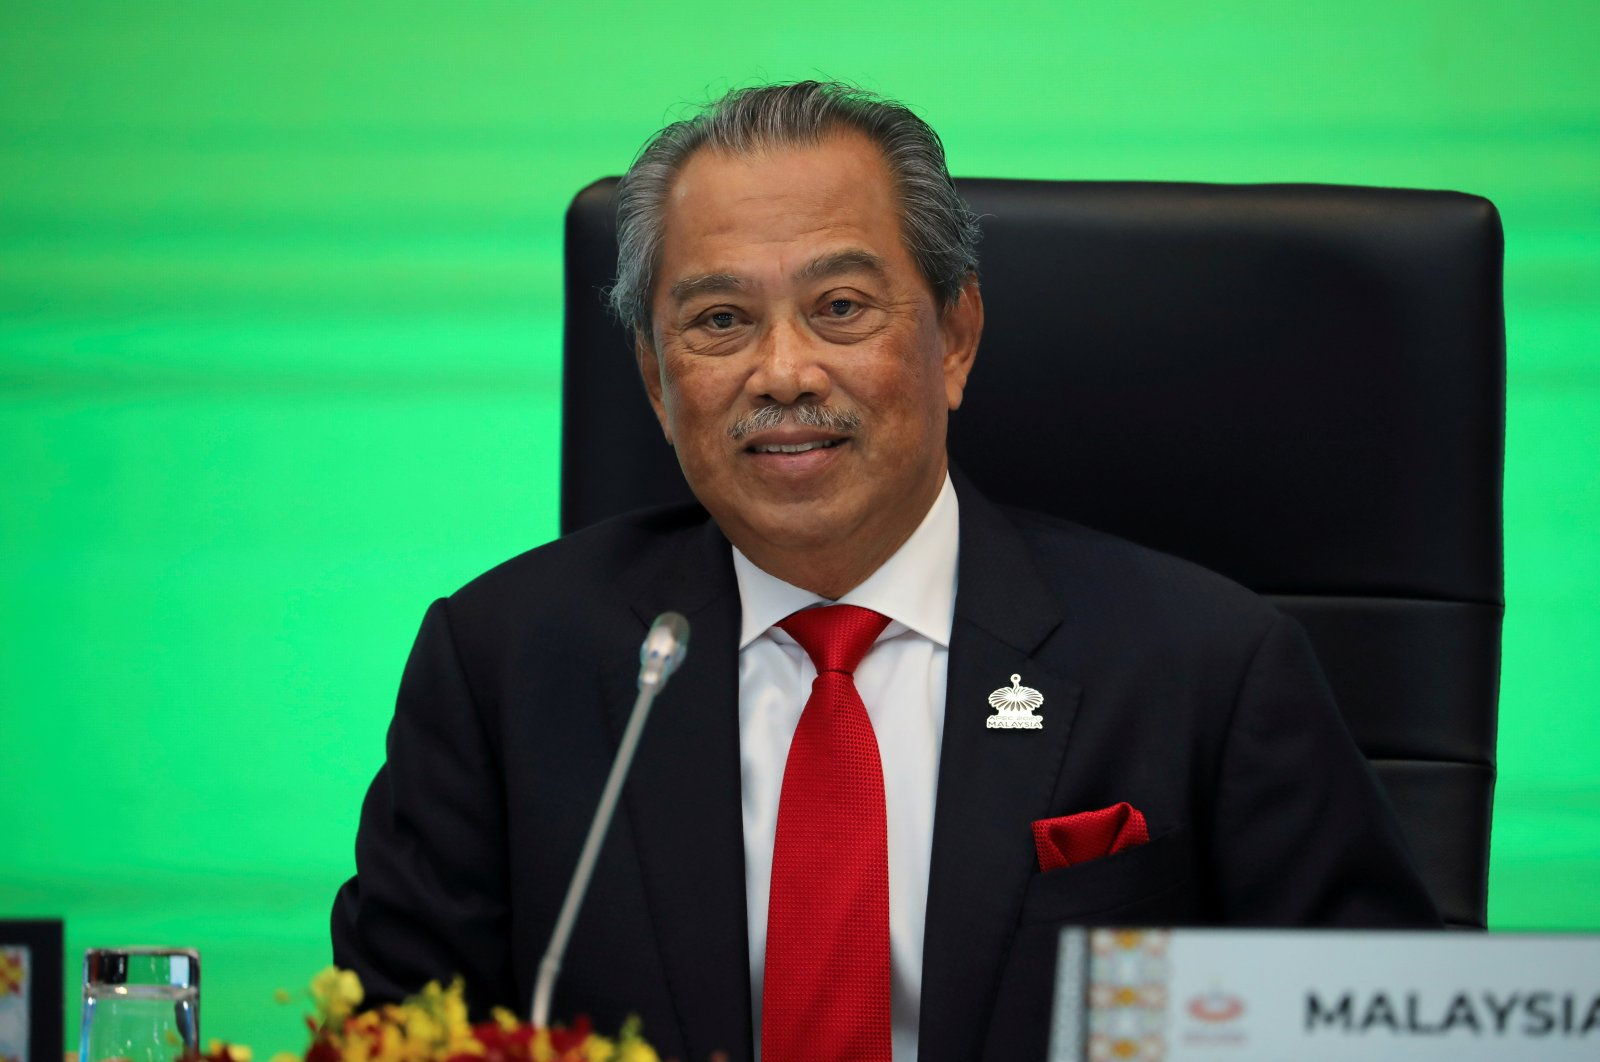 Malaysia's Prime Minister Muhyiddin Yassin speaks during opening remarks for the virtual APEC Economic Leaders Meeting 2020, in Kuala Lumpur, Malaysia November 20, 2020. (Reuters Photo)